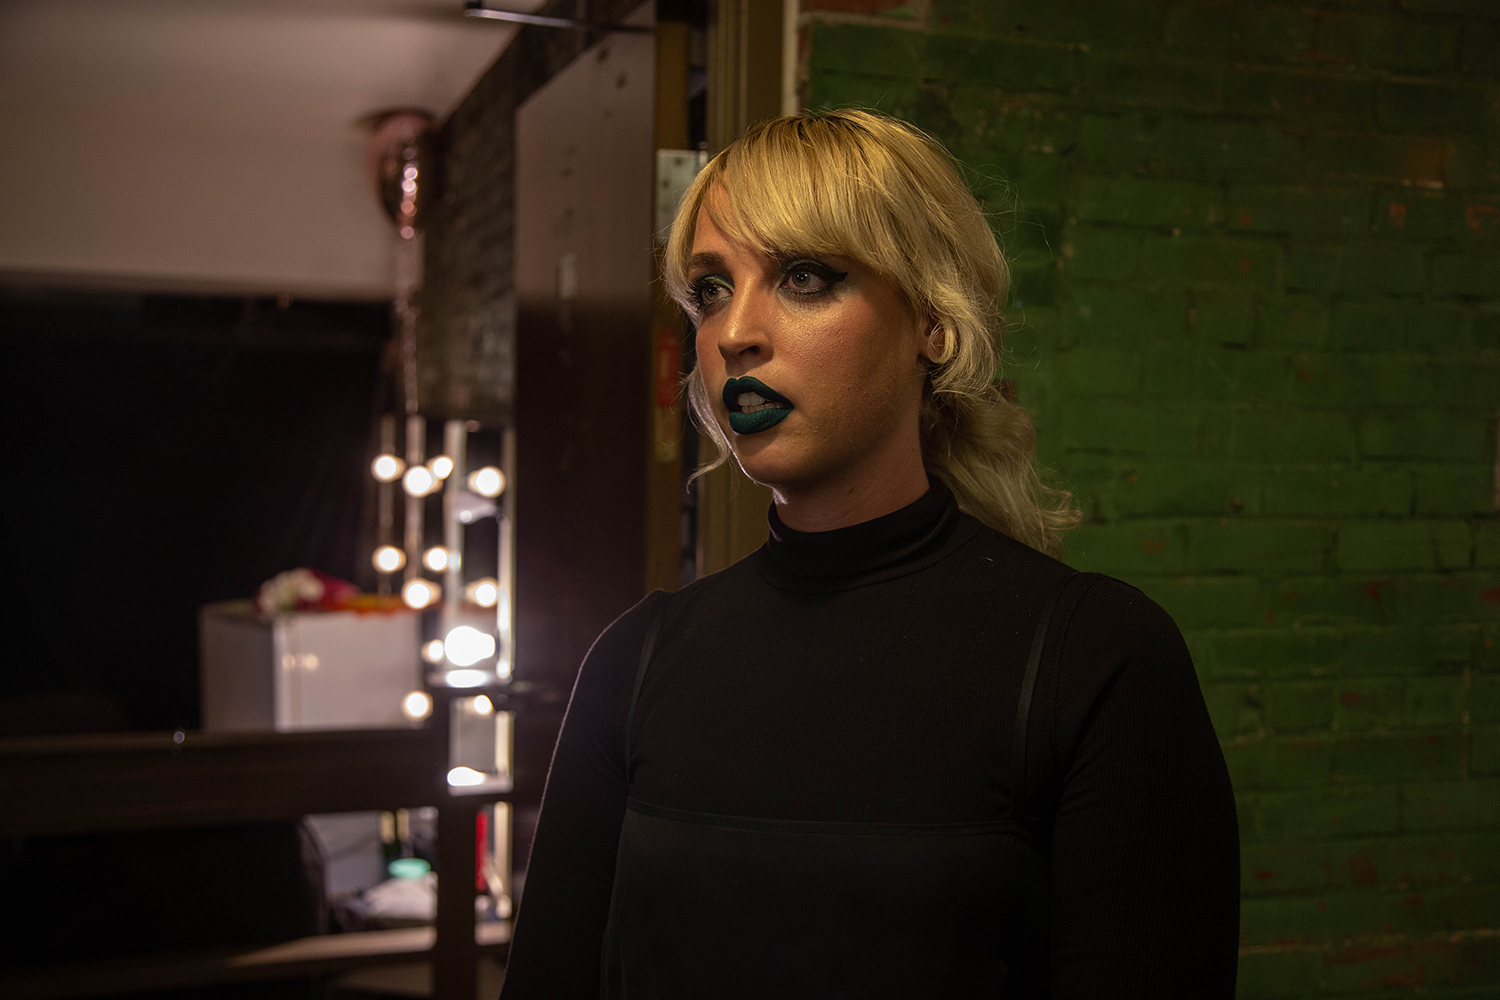 Elizabeth Moen is seen before her performance at the Englert Theater on Friday, September 14, 2018. Moen performed at the Englert as part of her release tour for her LP